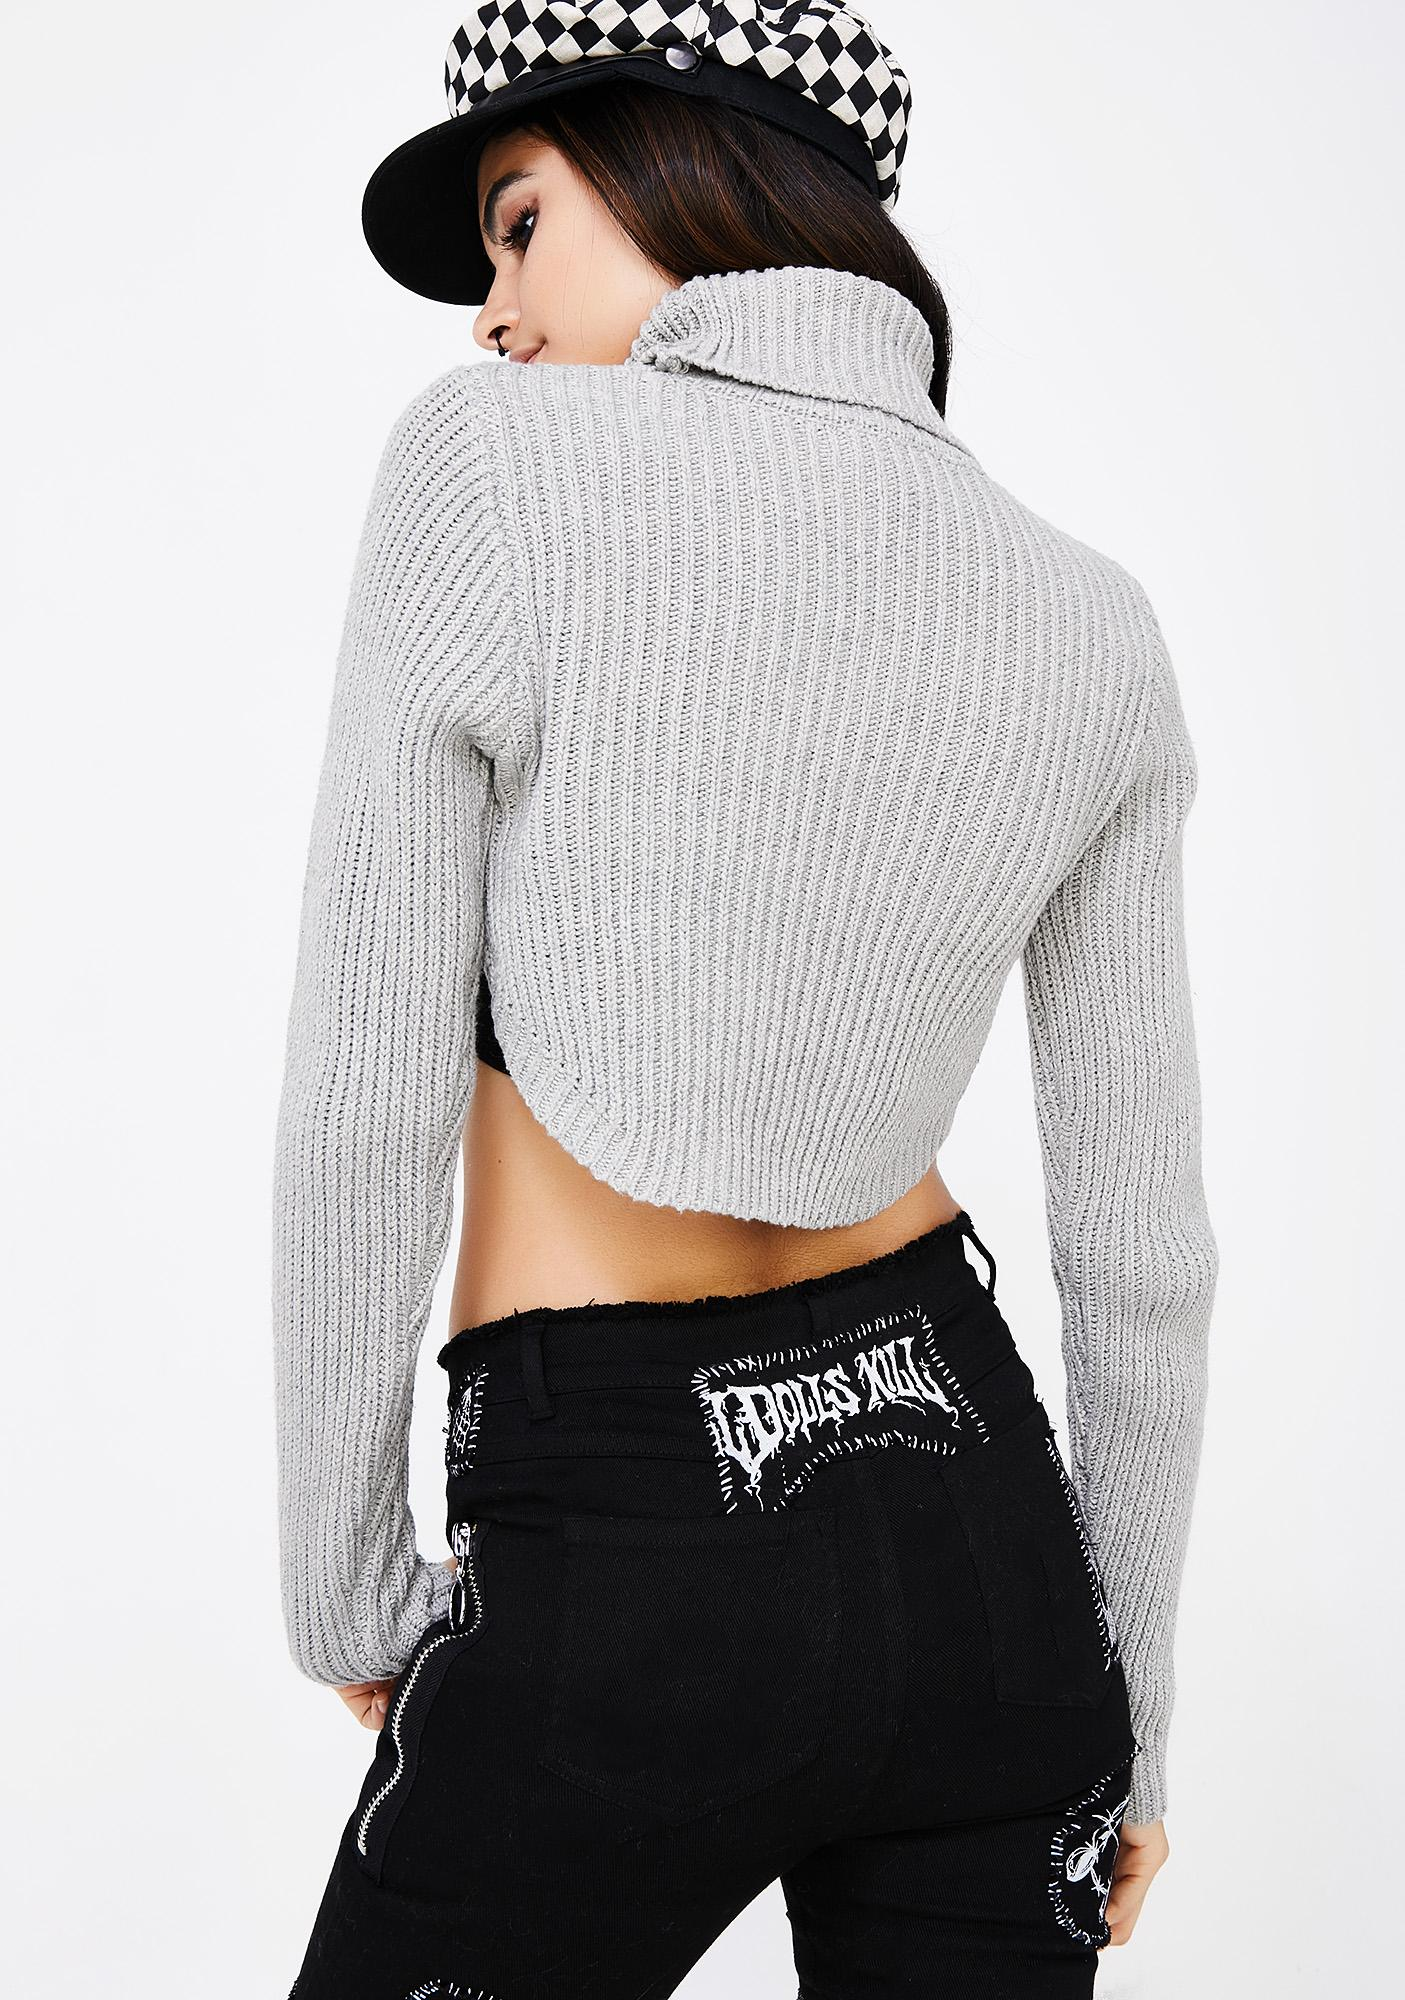 Short Story Cropped Sweater